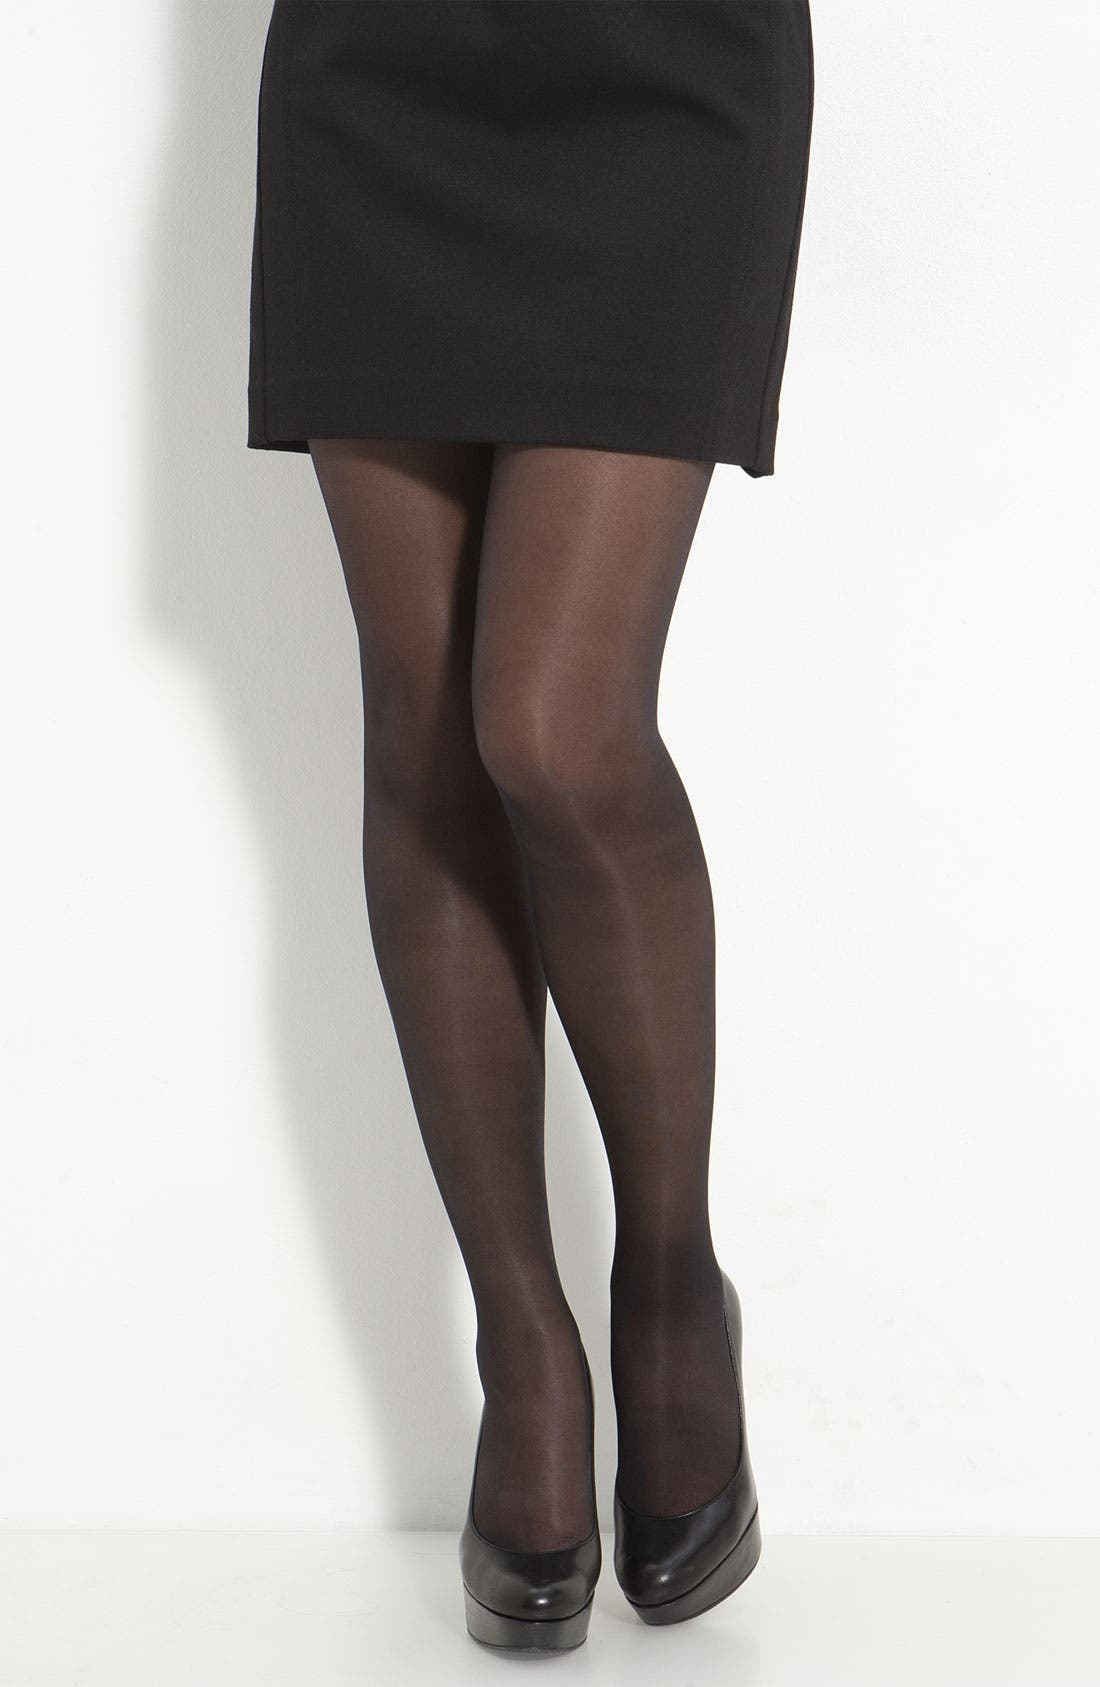 Repos 70 Control Top Pantyhose,                         Main,                         color, BLACK